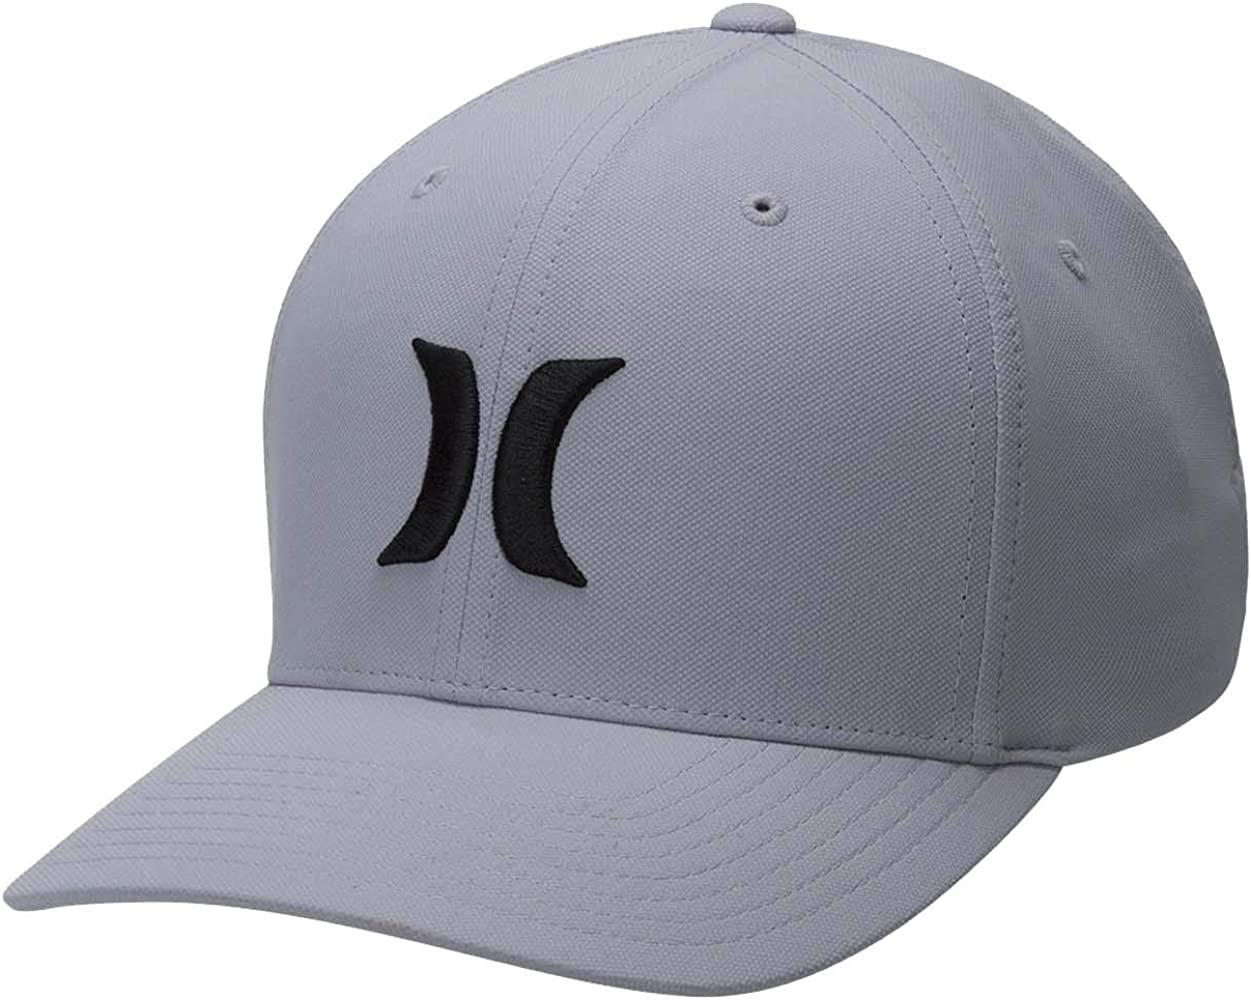 Hurley M Dri-Fit One&Only 2.0 Hat Gorra, Hombre, Black/Dark Grey ...